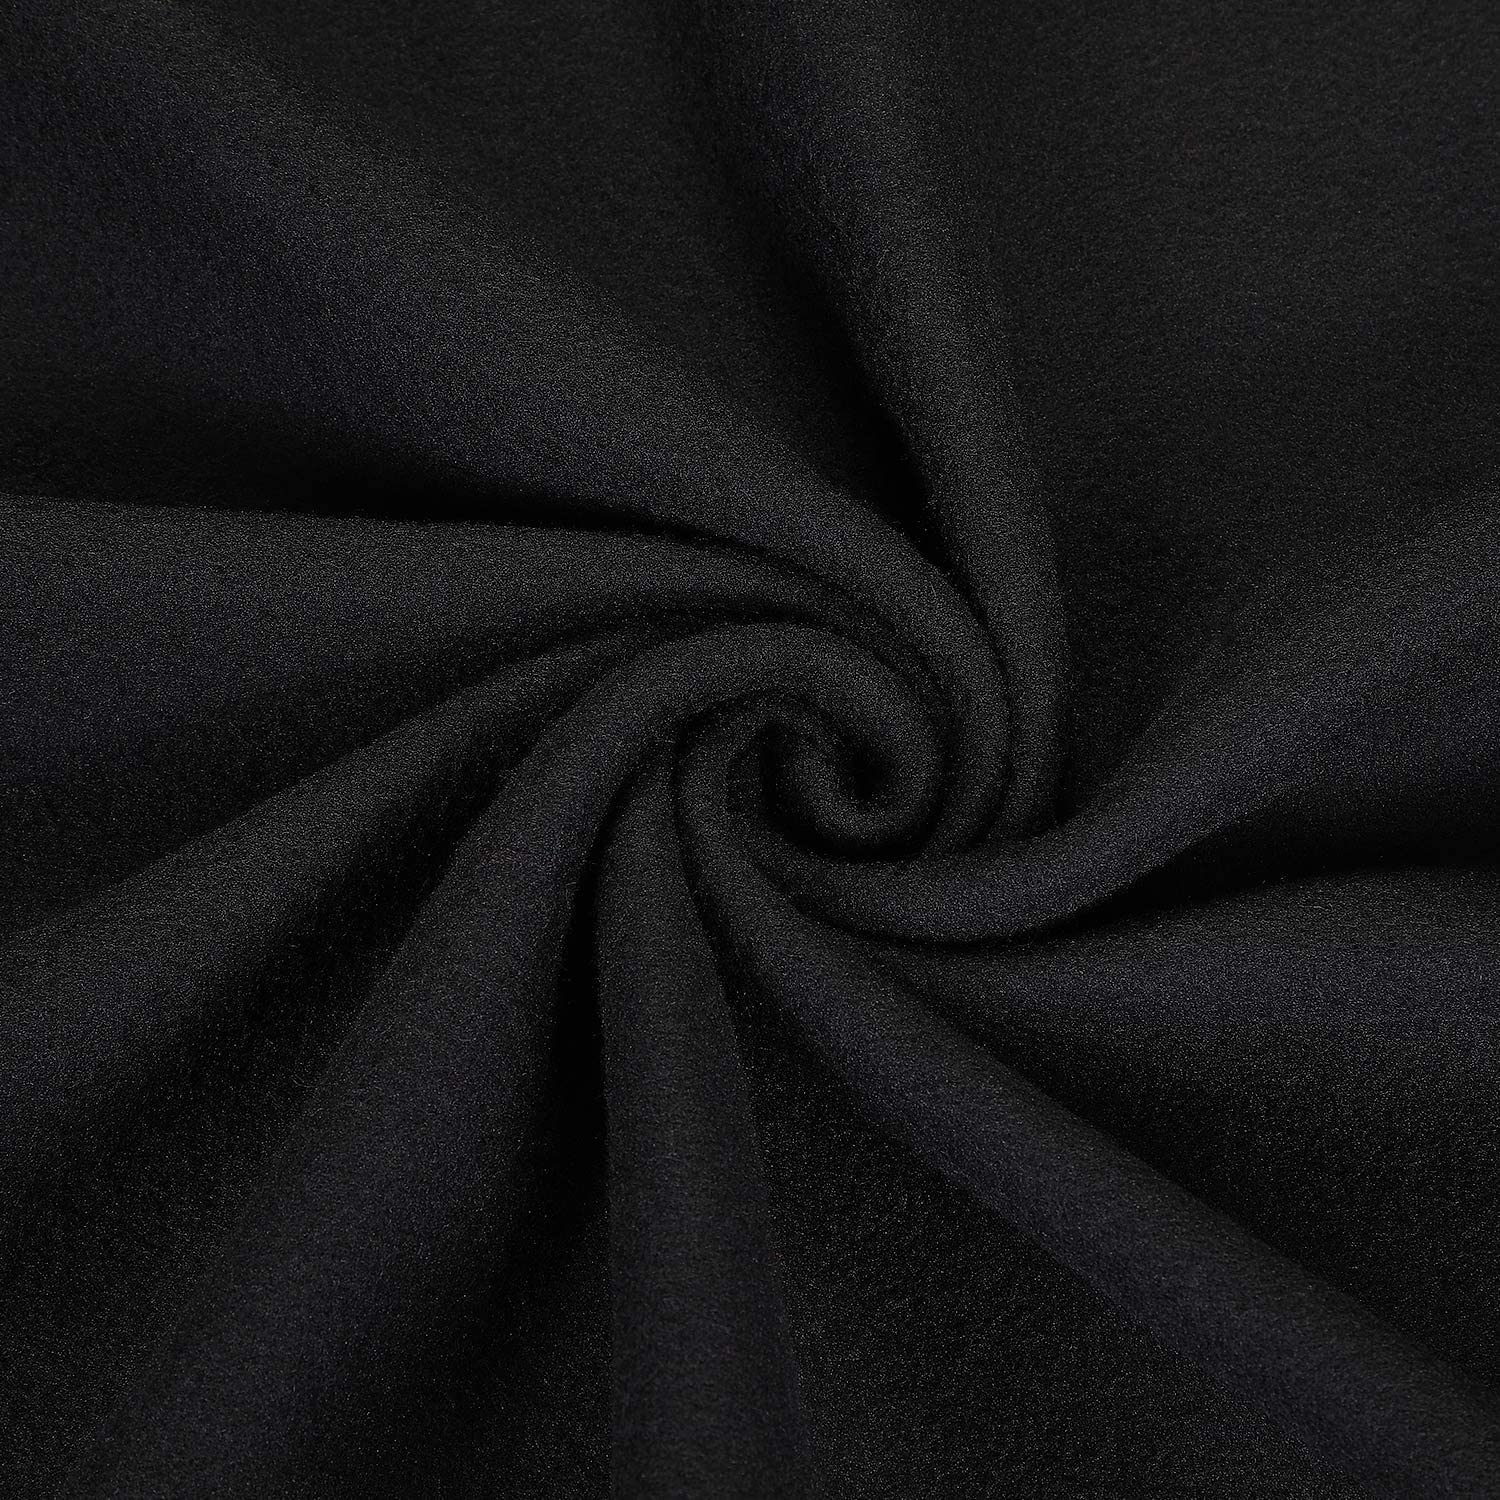 Solid Fleece Fabric 30 Inch Anti-Pill Fleece Fabric Square 75 cm Crafts Polar Fabric Fleece Double Brushed Fleece Fabric for DIY Sewing Christmas Party Festival Decorations (Black)